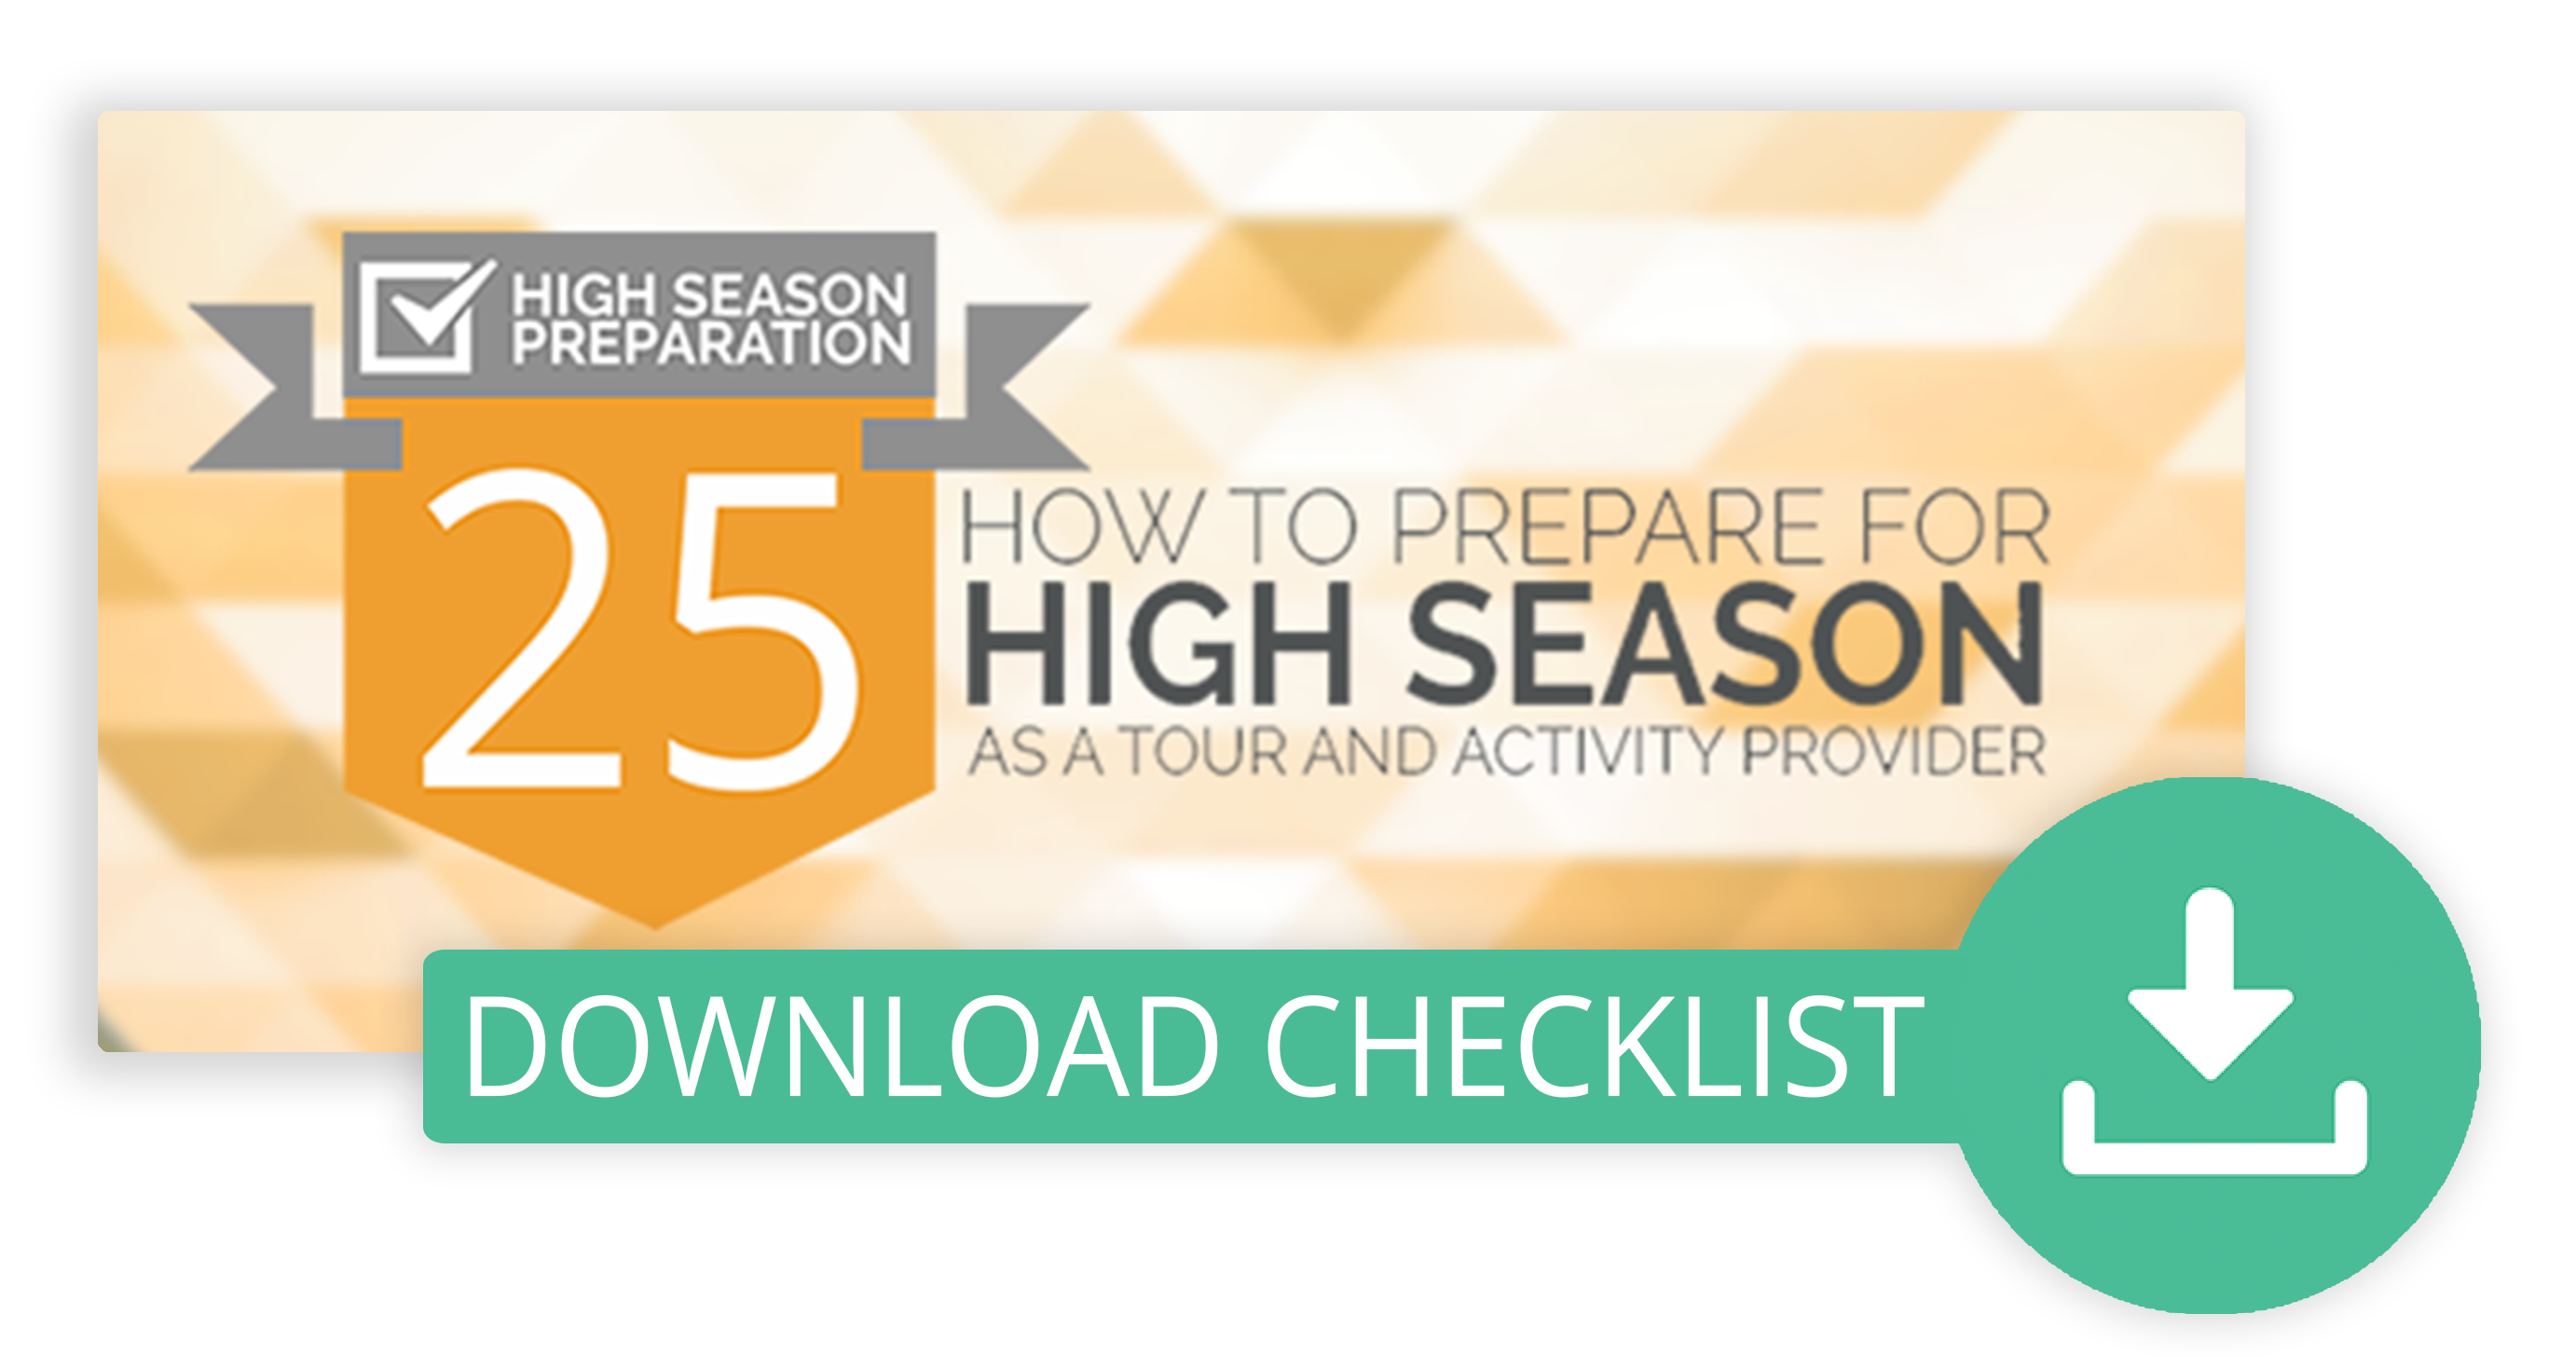 Prepare for high season